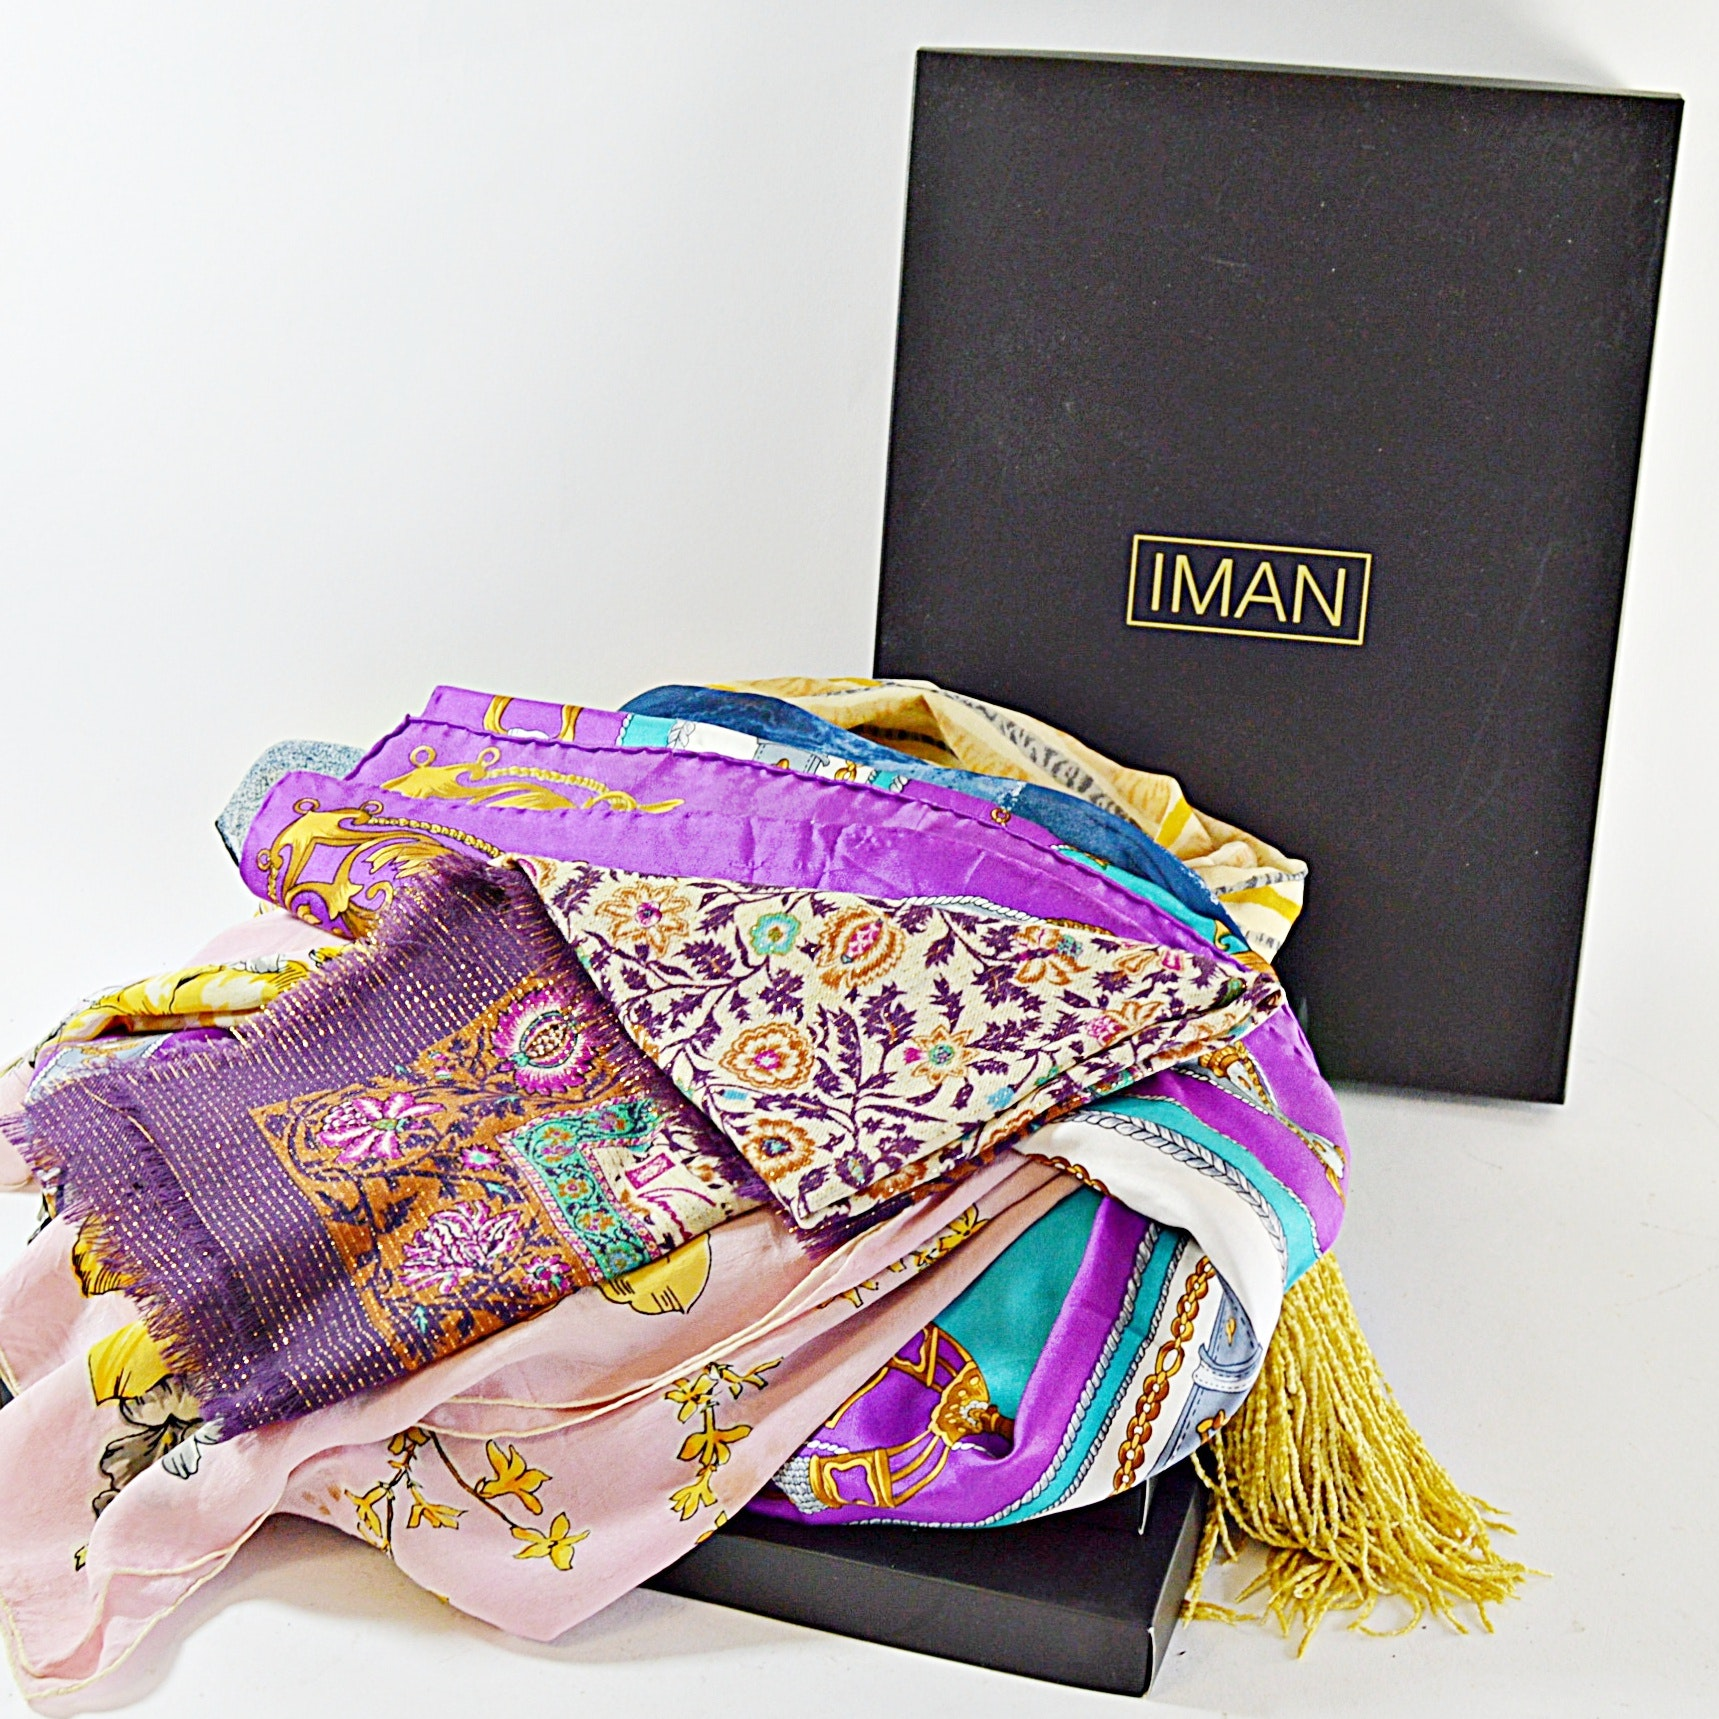 Scarf Collection with Iman, Vera